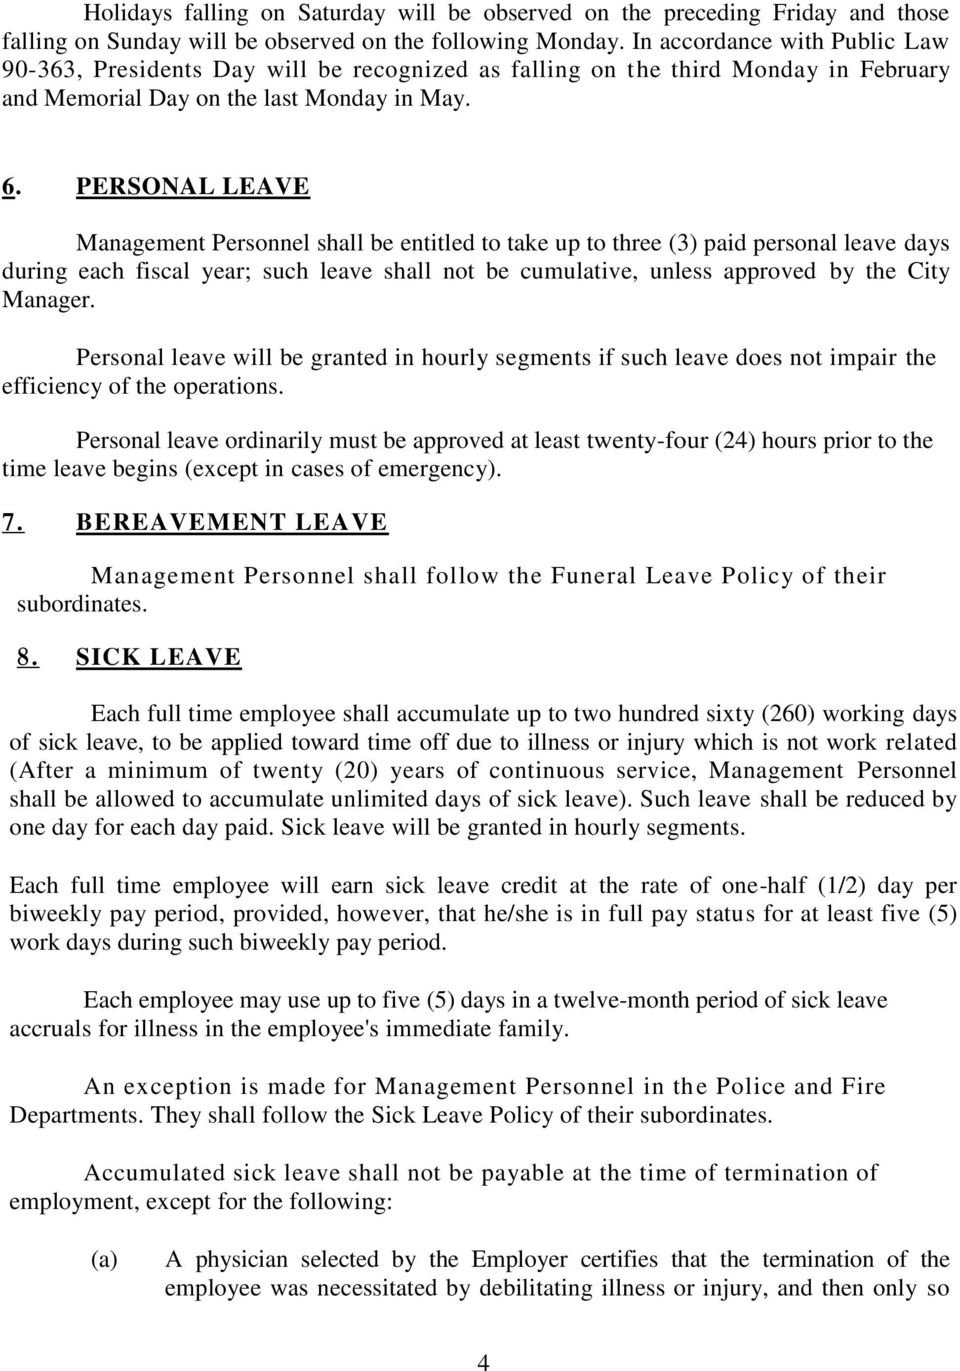 PERSONAL LEAVE Management Personnel shall be entitled to take up to three (3) paid personal leave days during each fiscal year; such leave shall not be cumulative, unless approved by the City Manager.